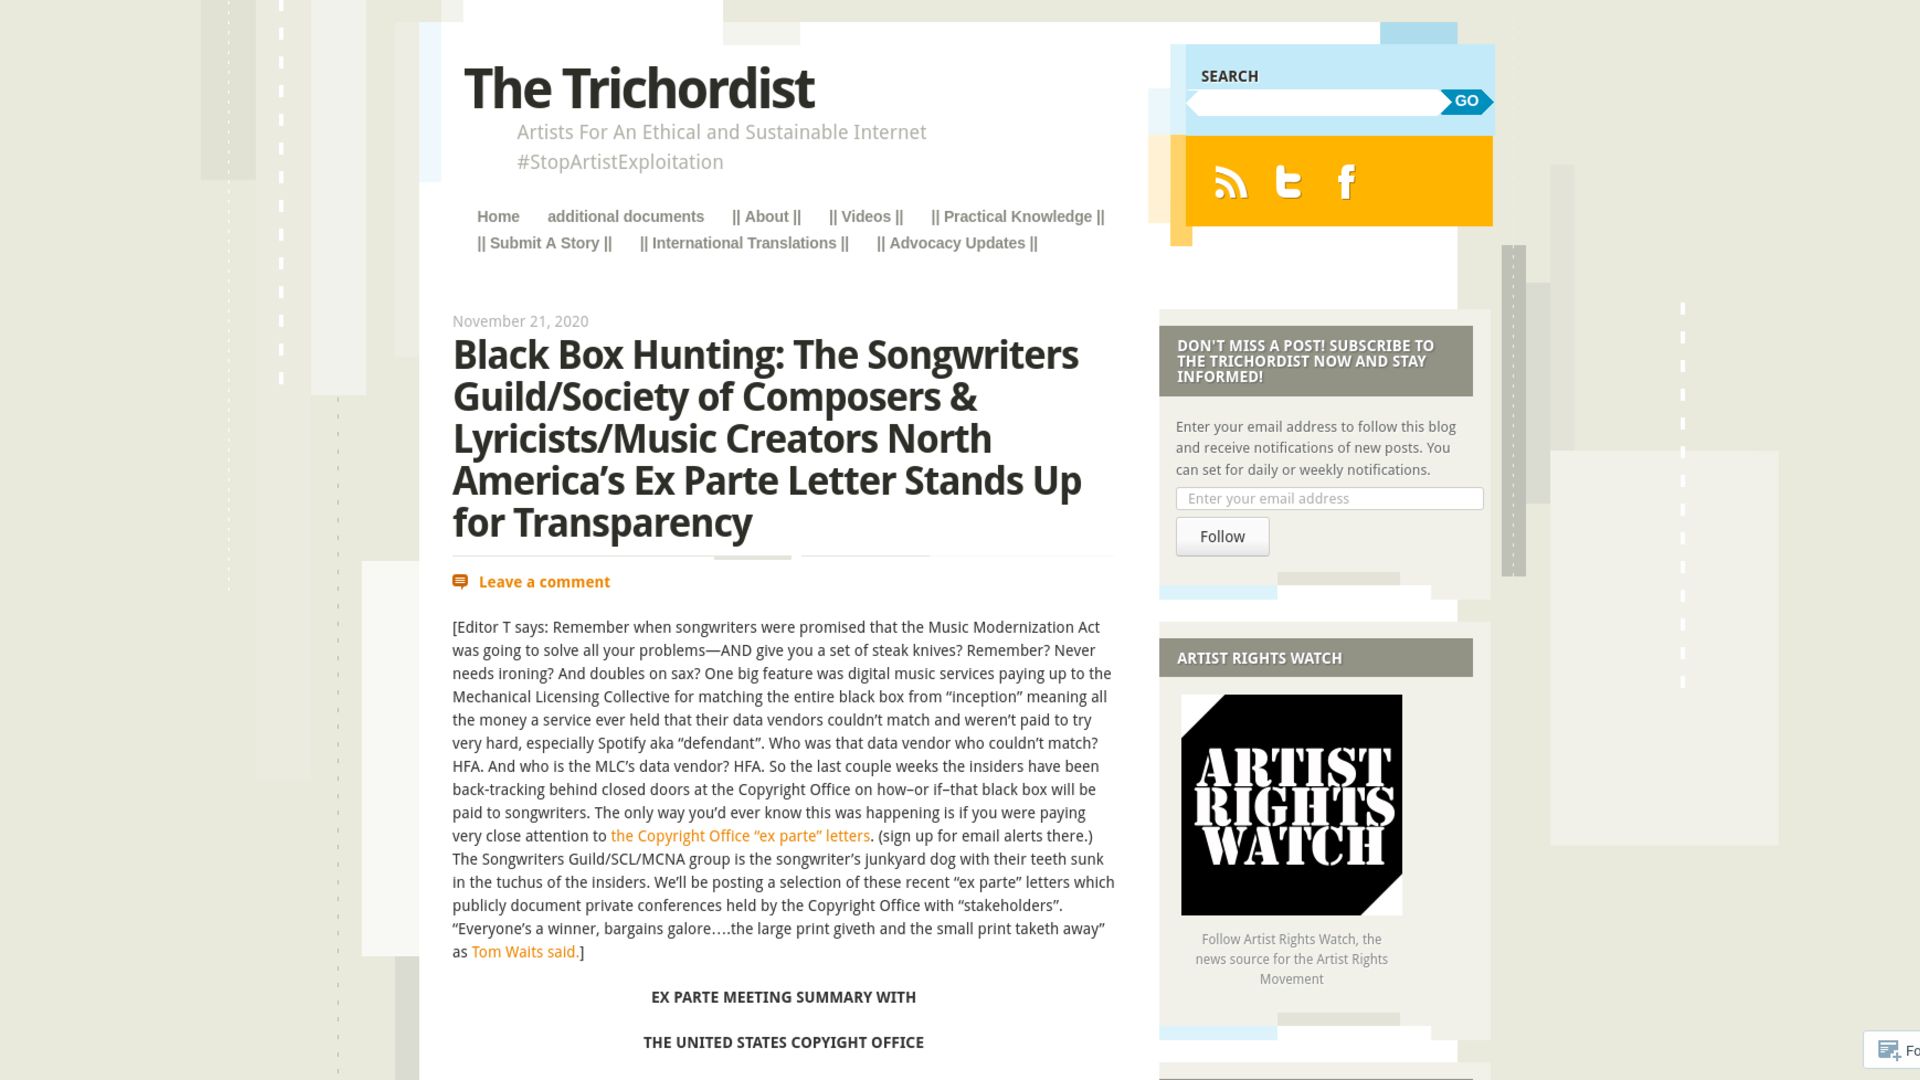 Fairness Rocks News Black Box Hunting: The Songwriters Guild/Society of Composers & Lyricists/Music Creators North America's Ex Parte Letter Stands Up for Transparency